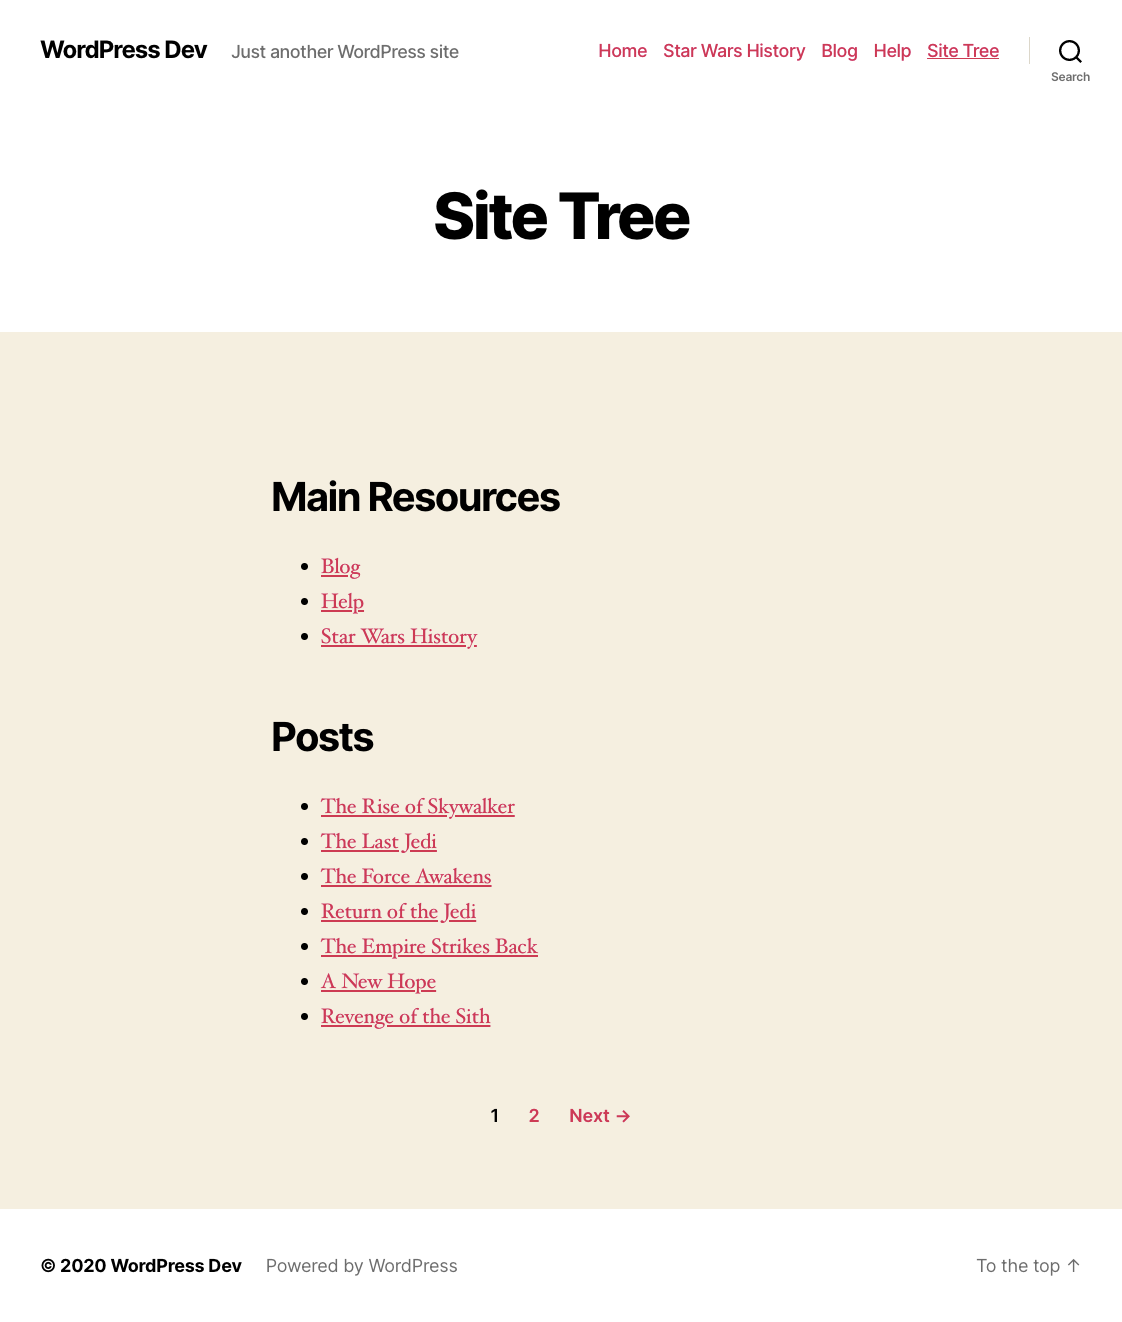 An example of paginated Site Tree.